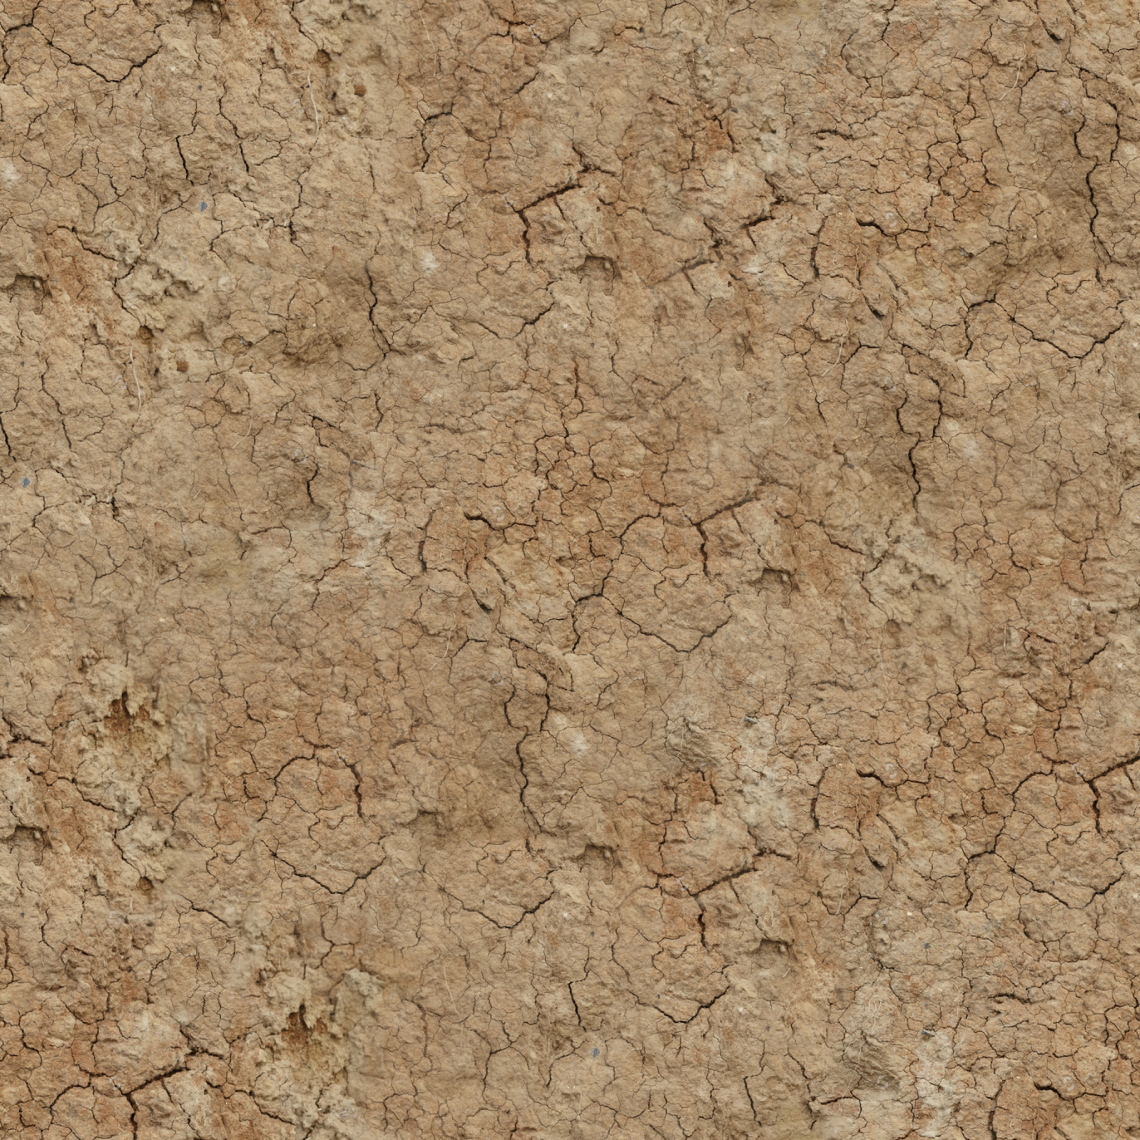 Browsing Seamless Ground Category - Good Textures